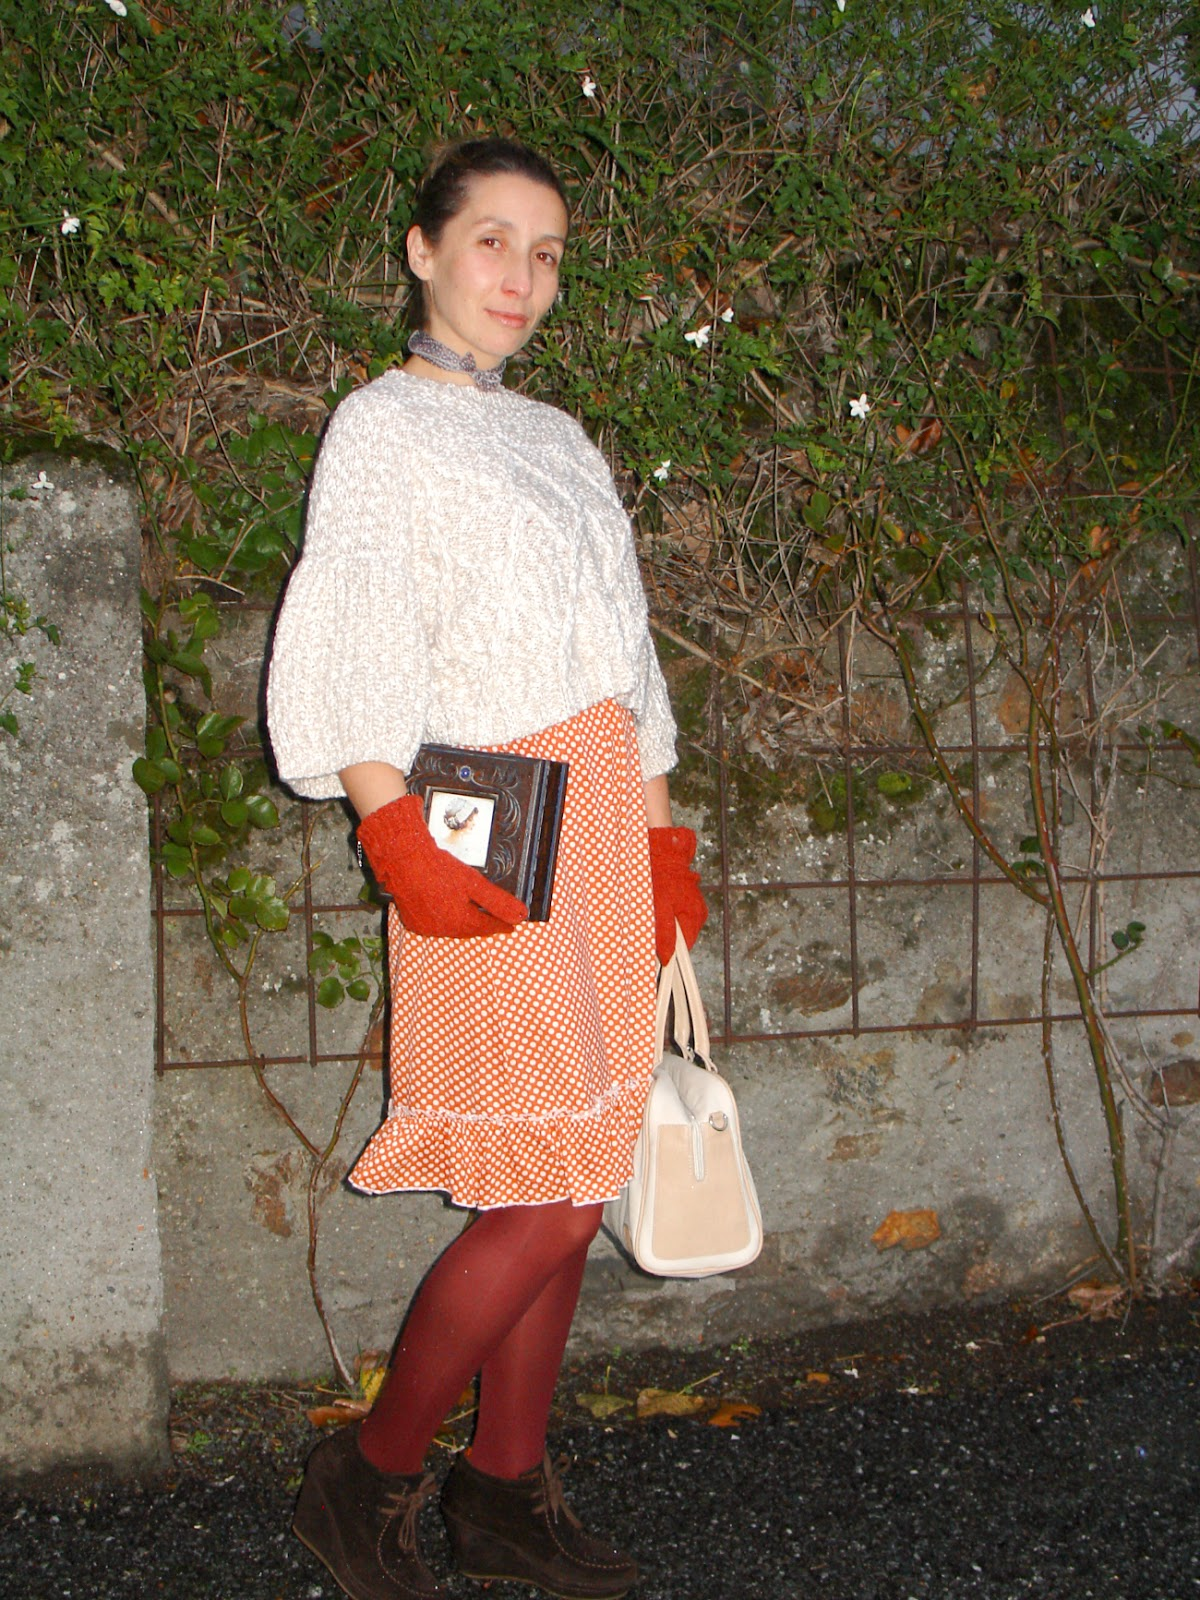 Vintage ootd in a polka dot dress. Visit www.forarealwoman.com  #fashion #moda #blogger